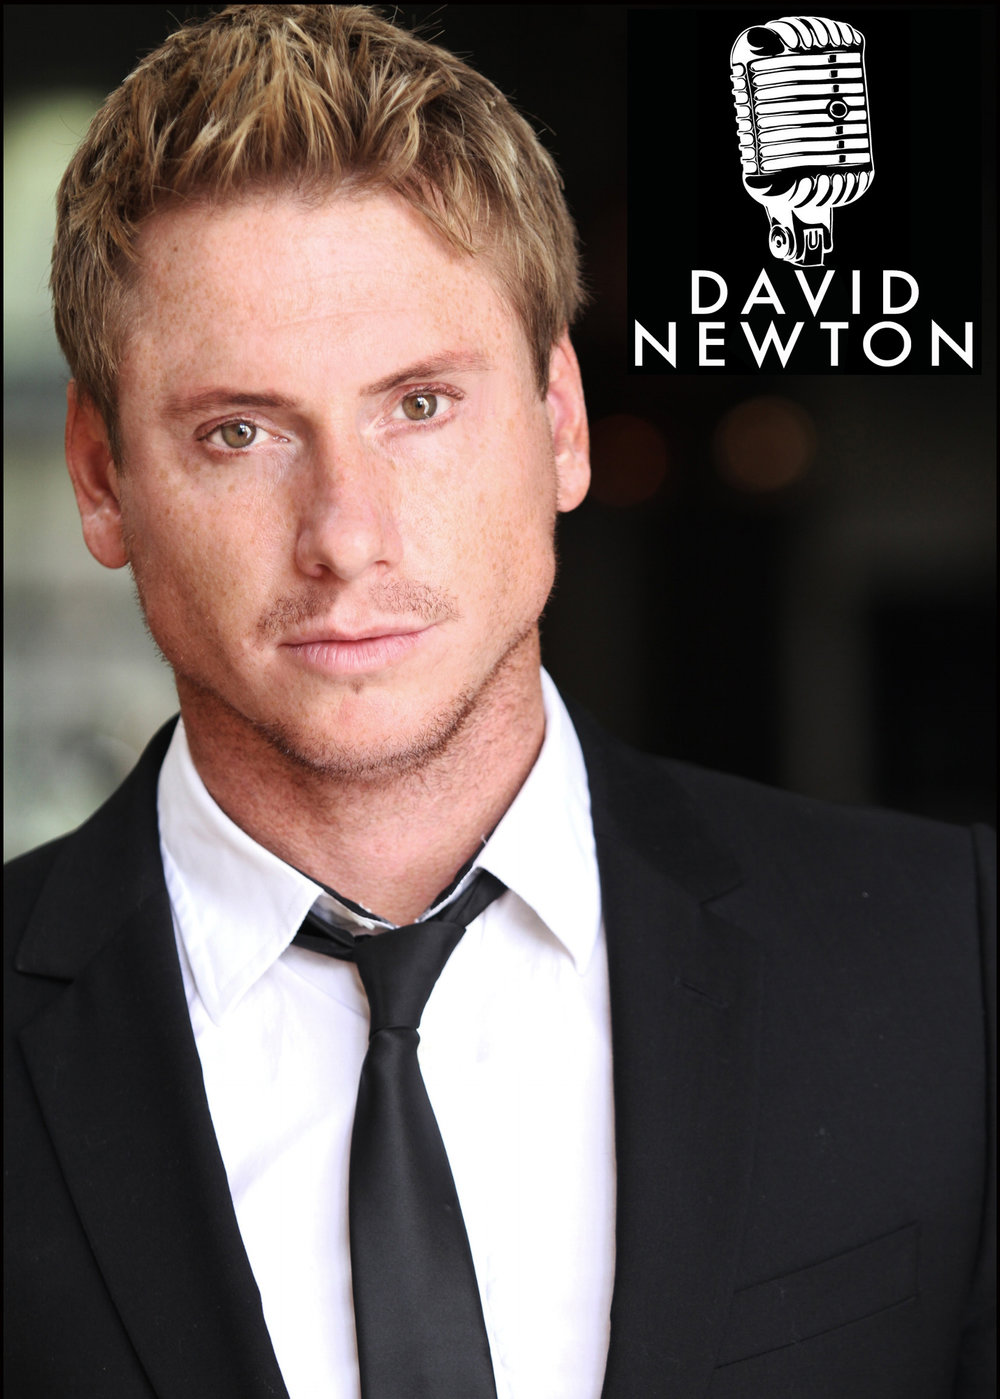 David+Newton+corporate+emcee+speaker logo.jpg